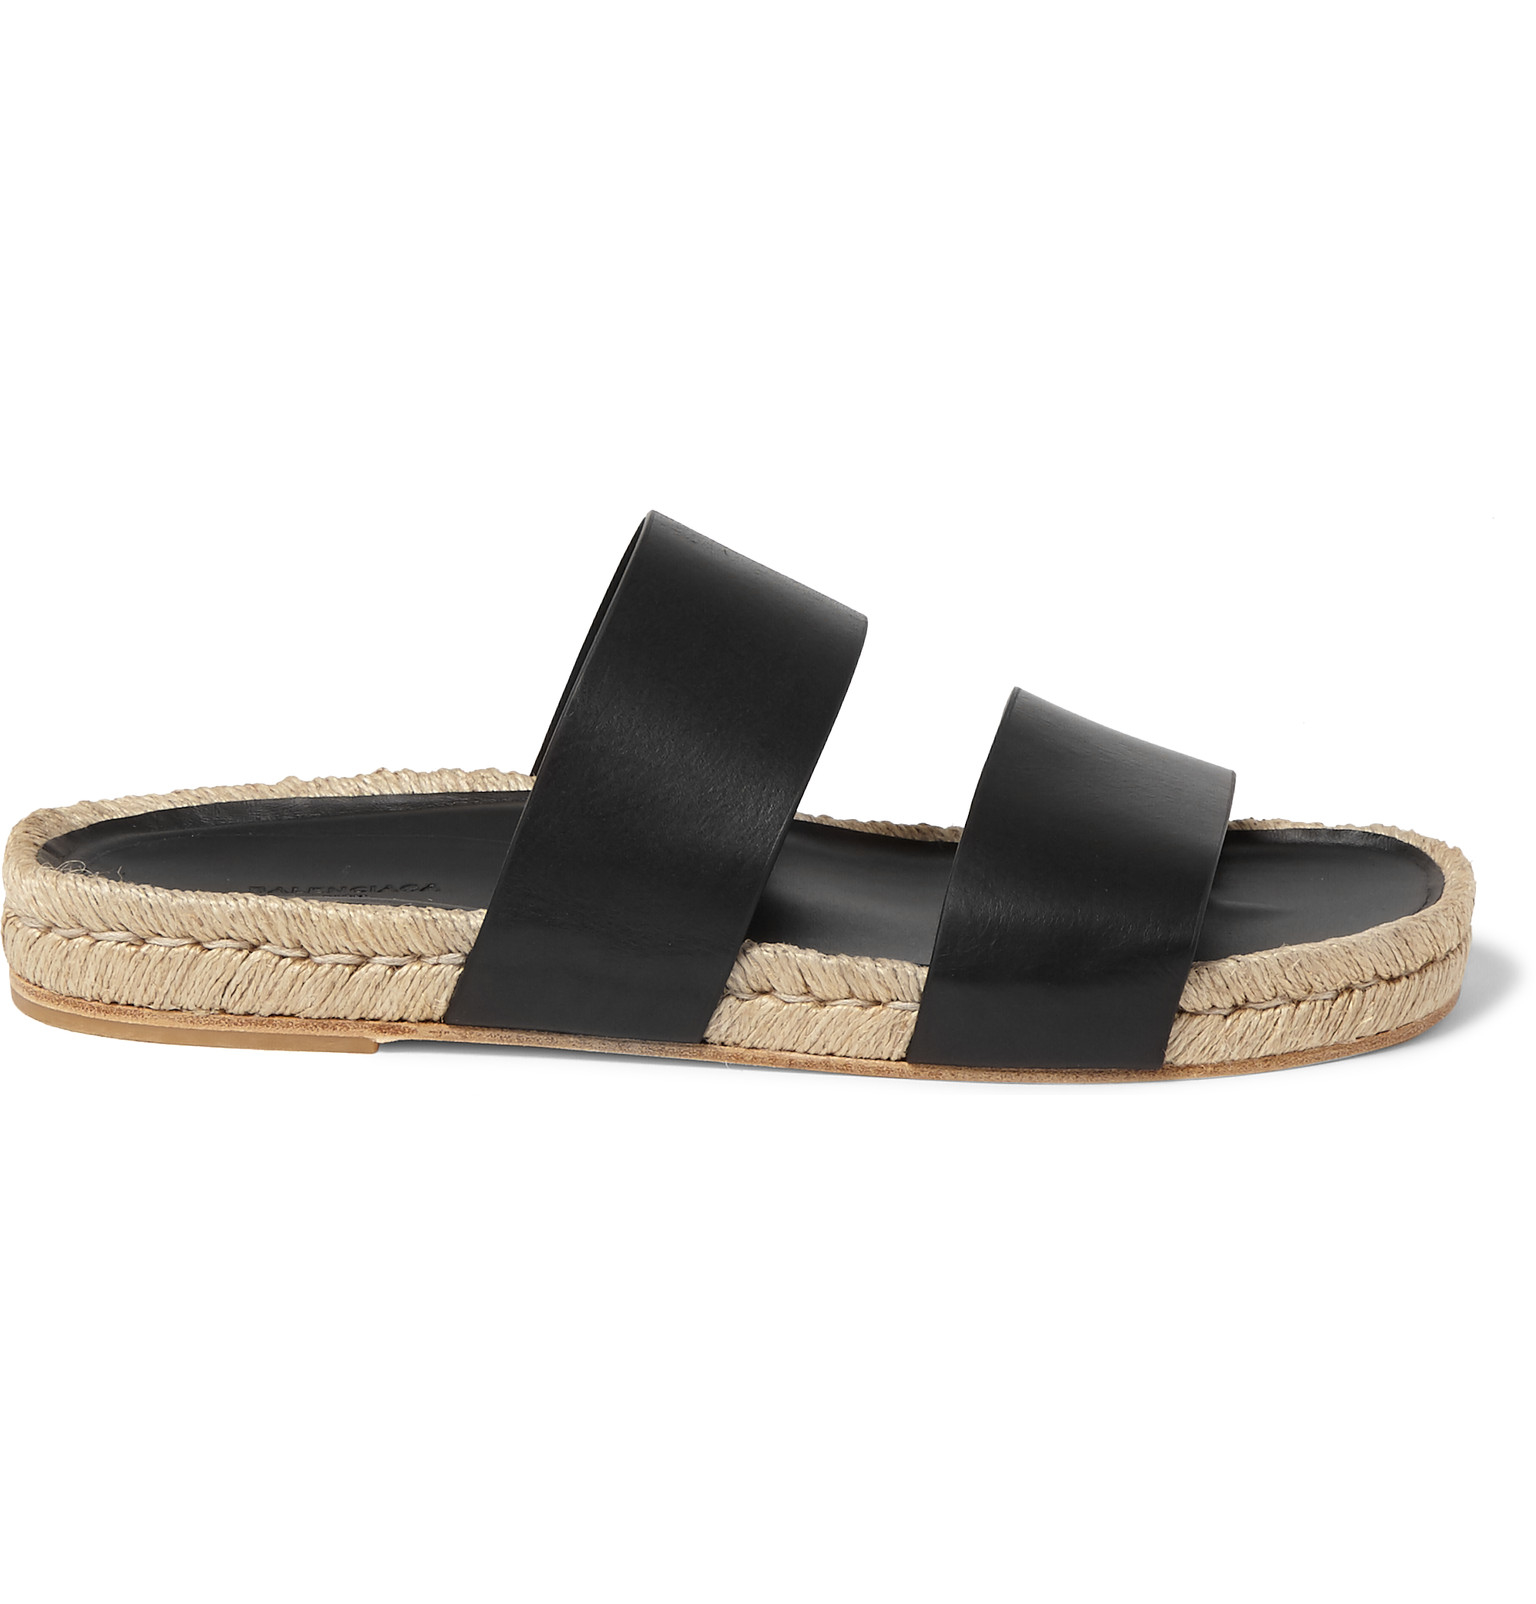 Balenciaga Leather Espadrille Sandals cheap pictures discount low cost free shipping pay with paypal 839zAx2I